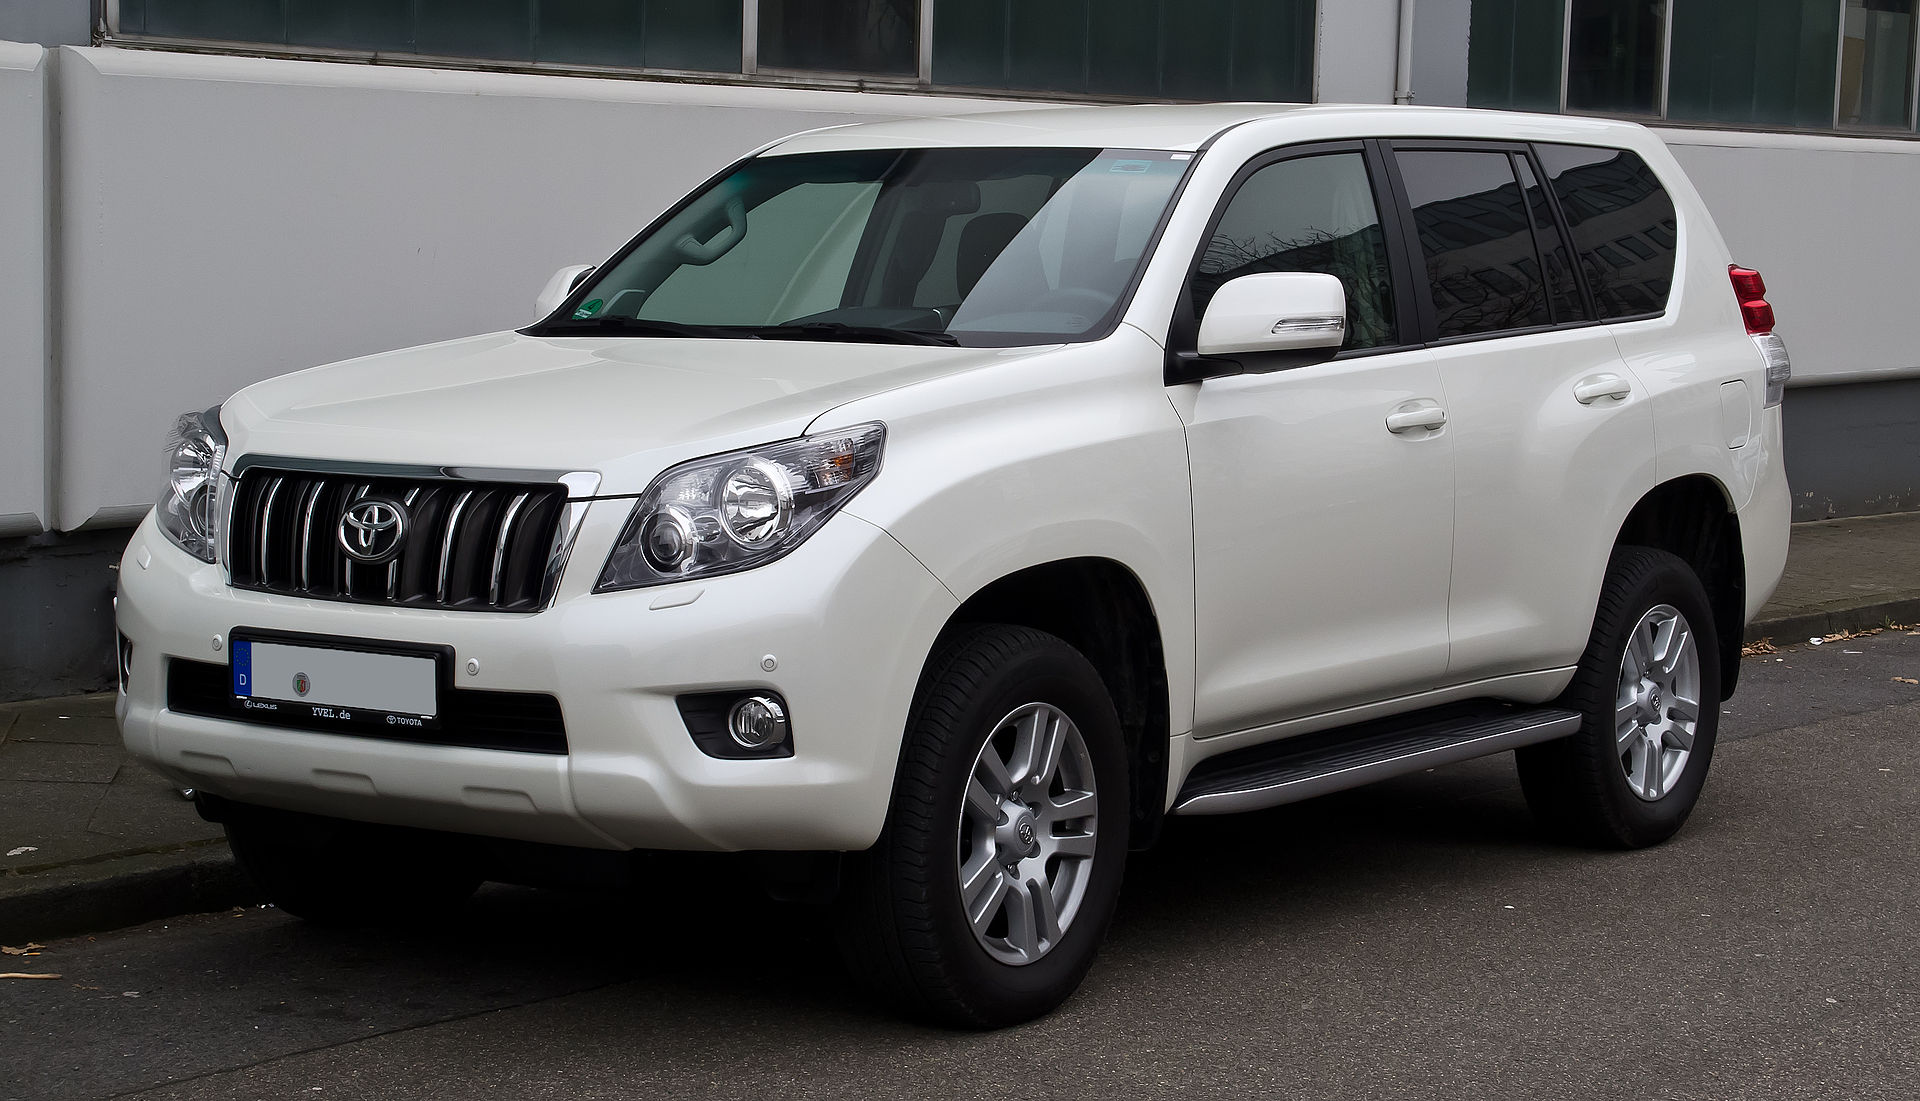 Toyota Land Cruiser Prado Wikipedia